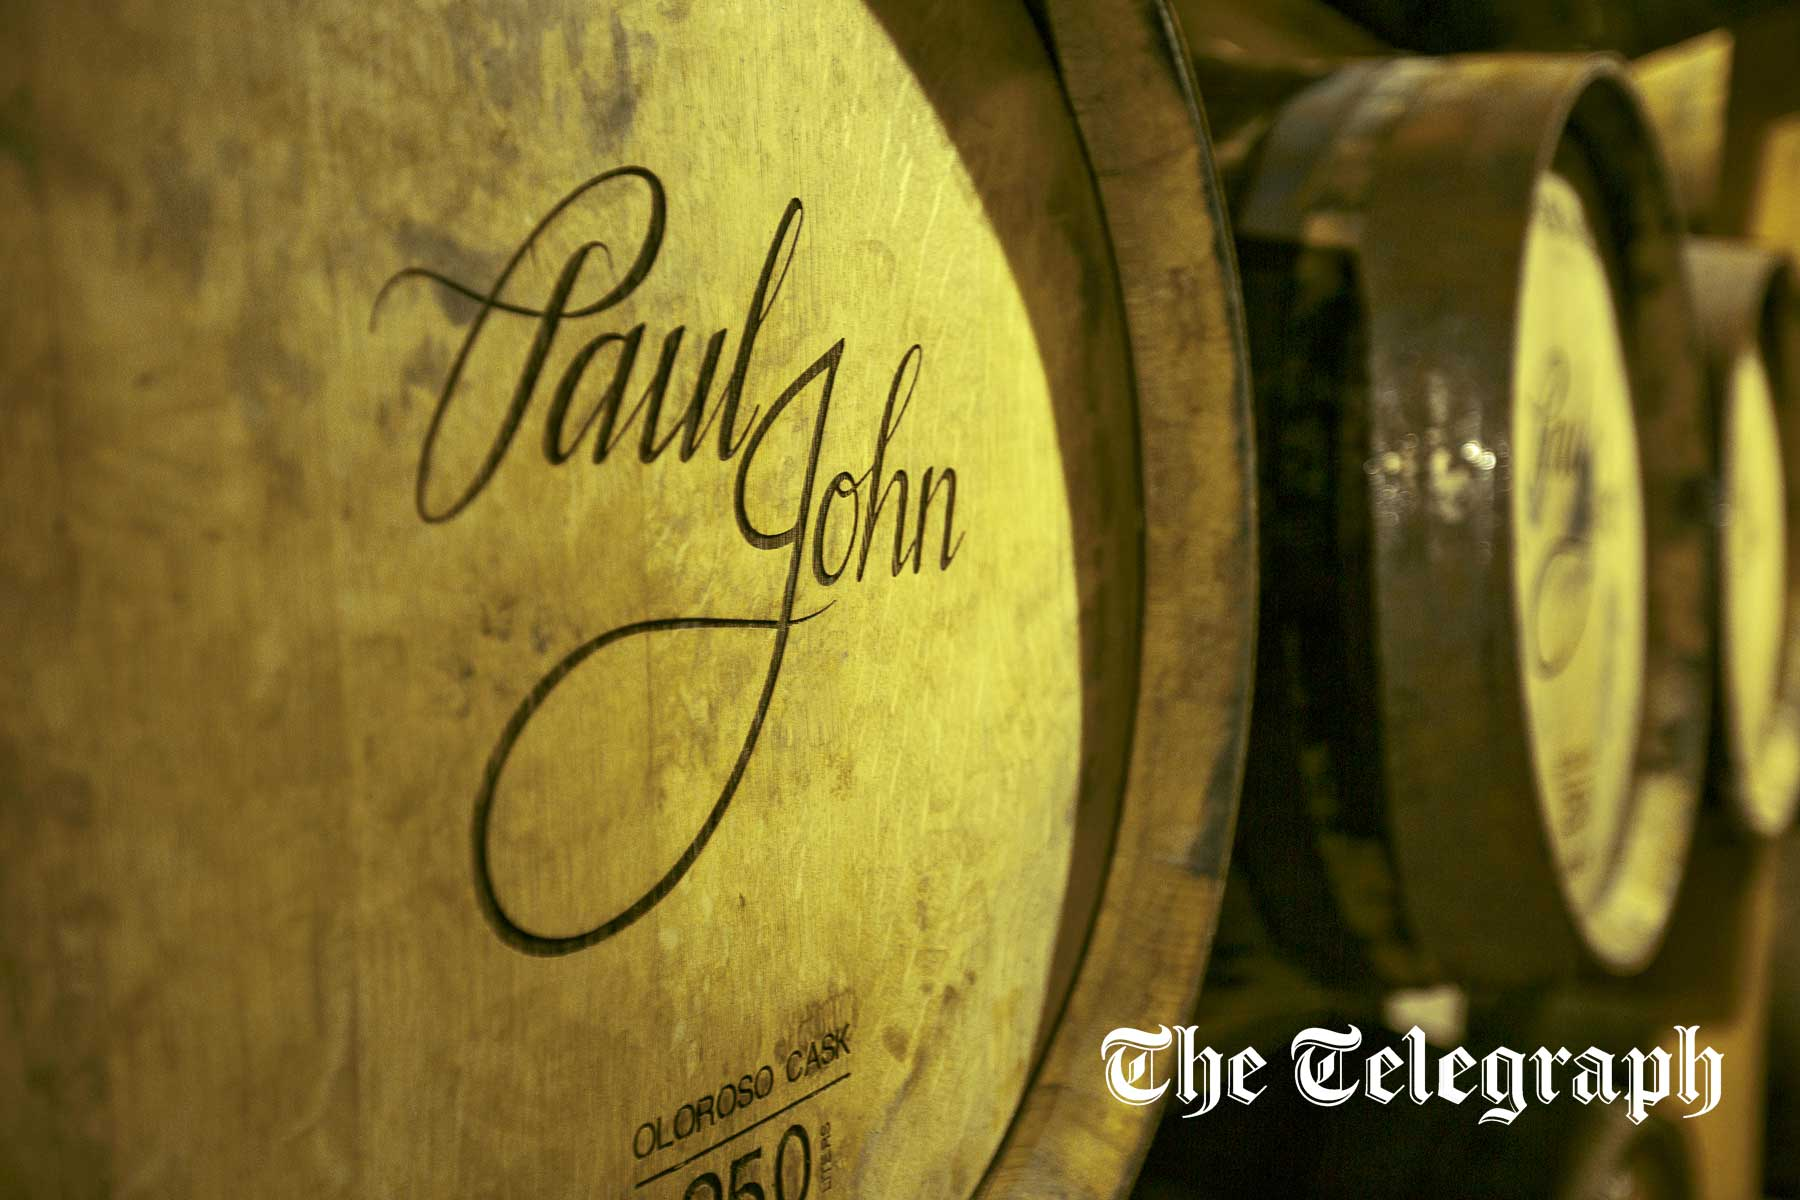 Three surprising countries making world-class whisky, The Telegraph UK